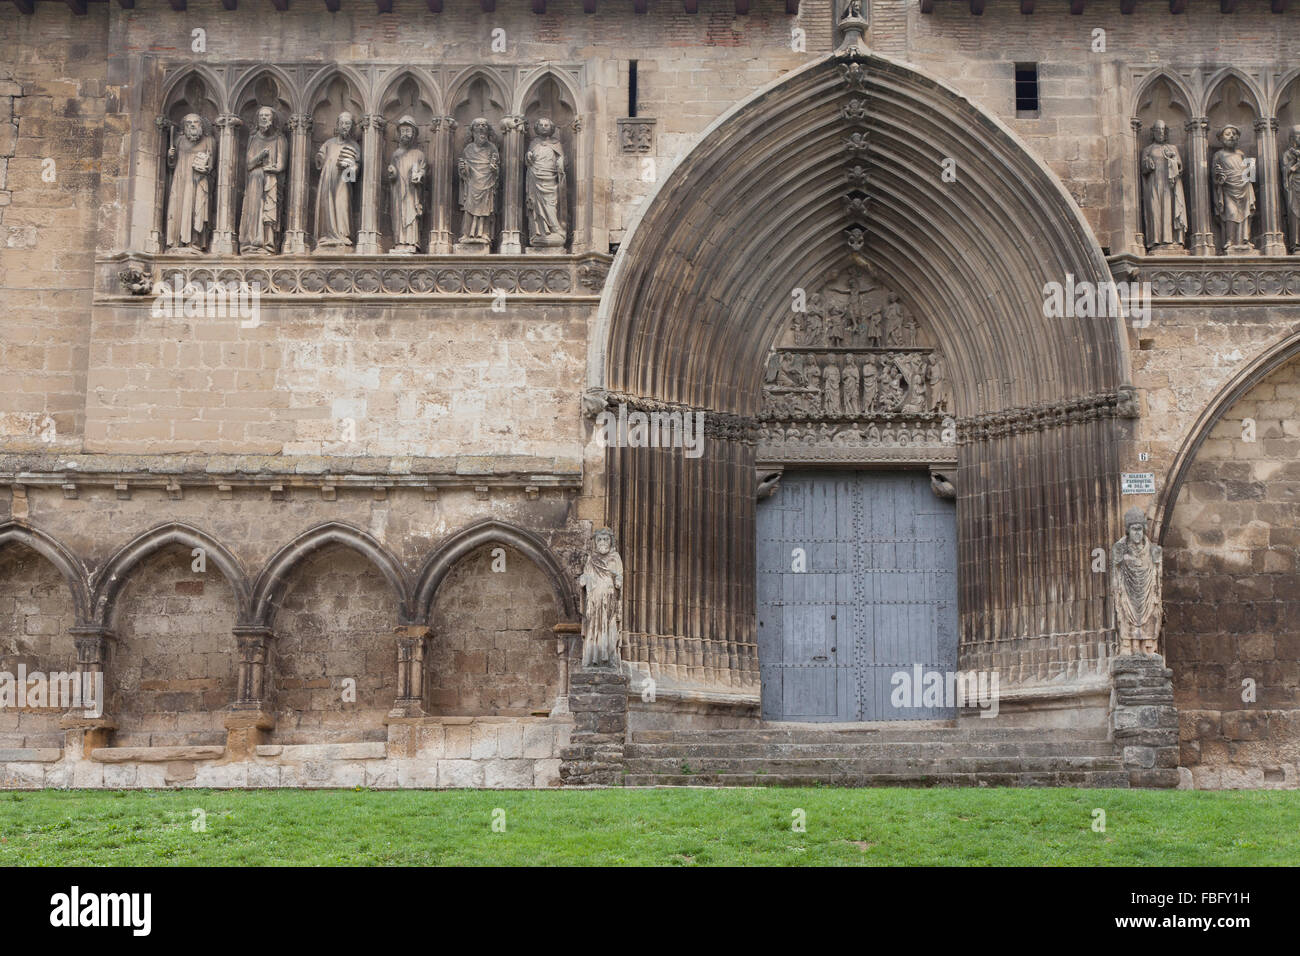 Gothic facade of the Church of Holy Sepulchre in Estella-Lizarra - Navarre, Spain. - Stock Image